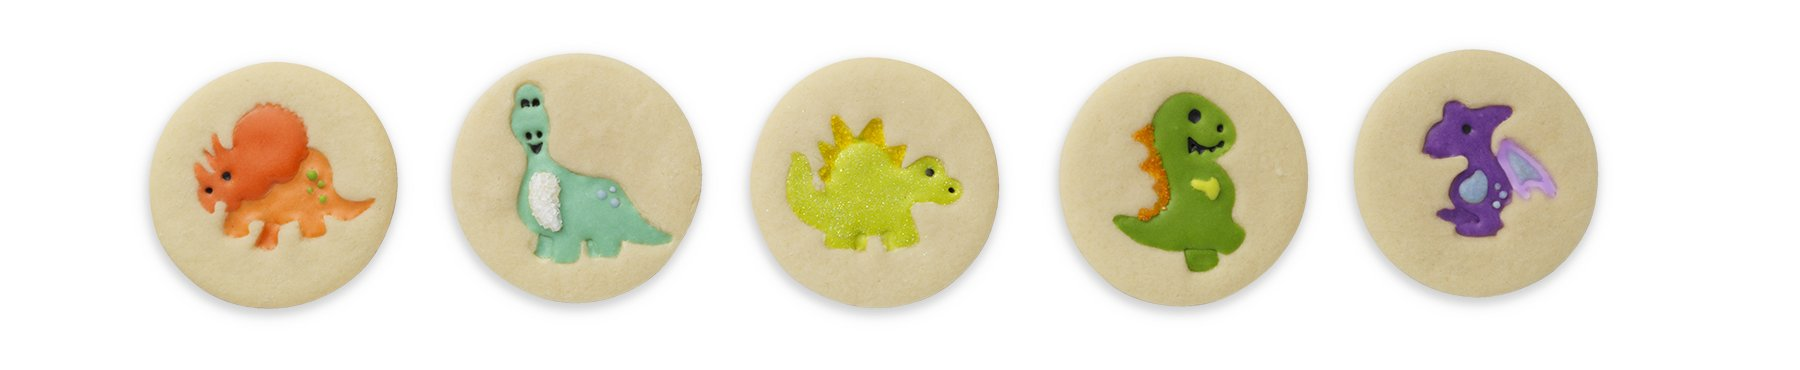 Chef'n Cookie Cutter and Stamp (Dinosaur Shapes) by Chef'n (Image #3)